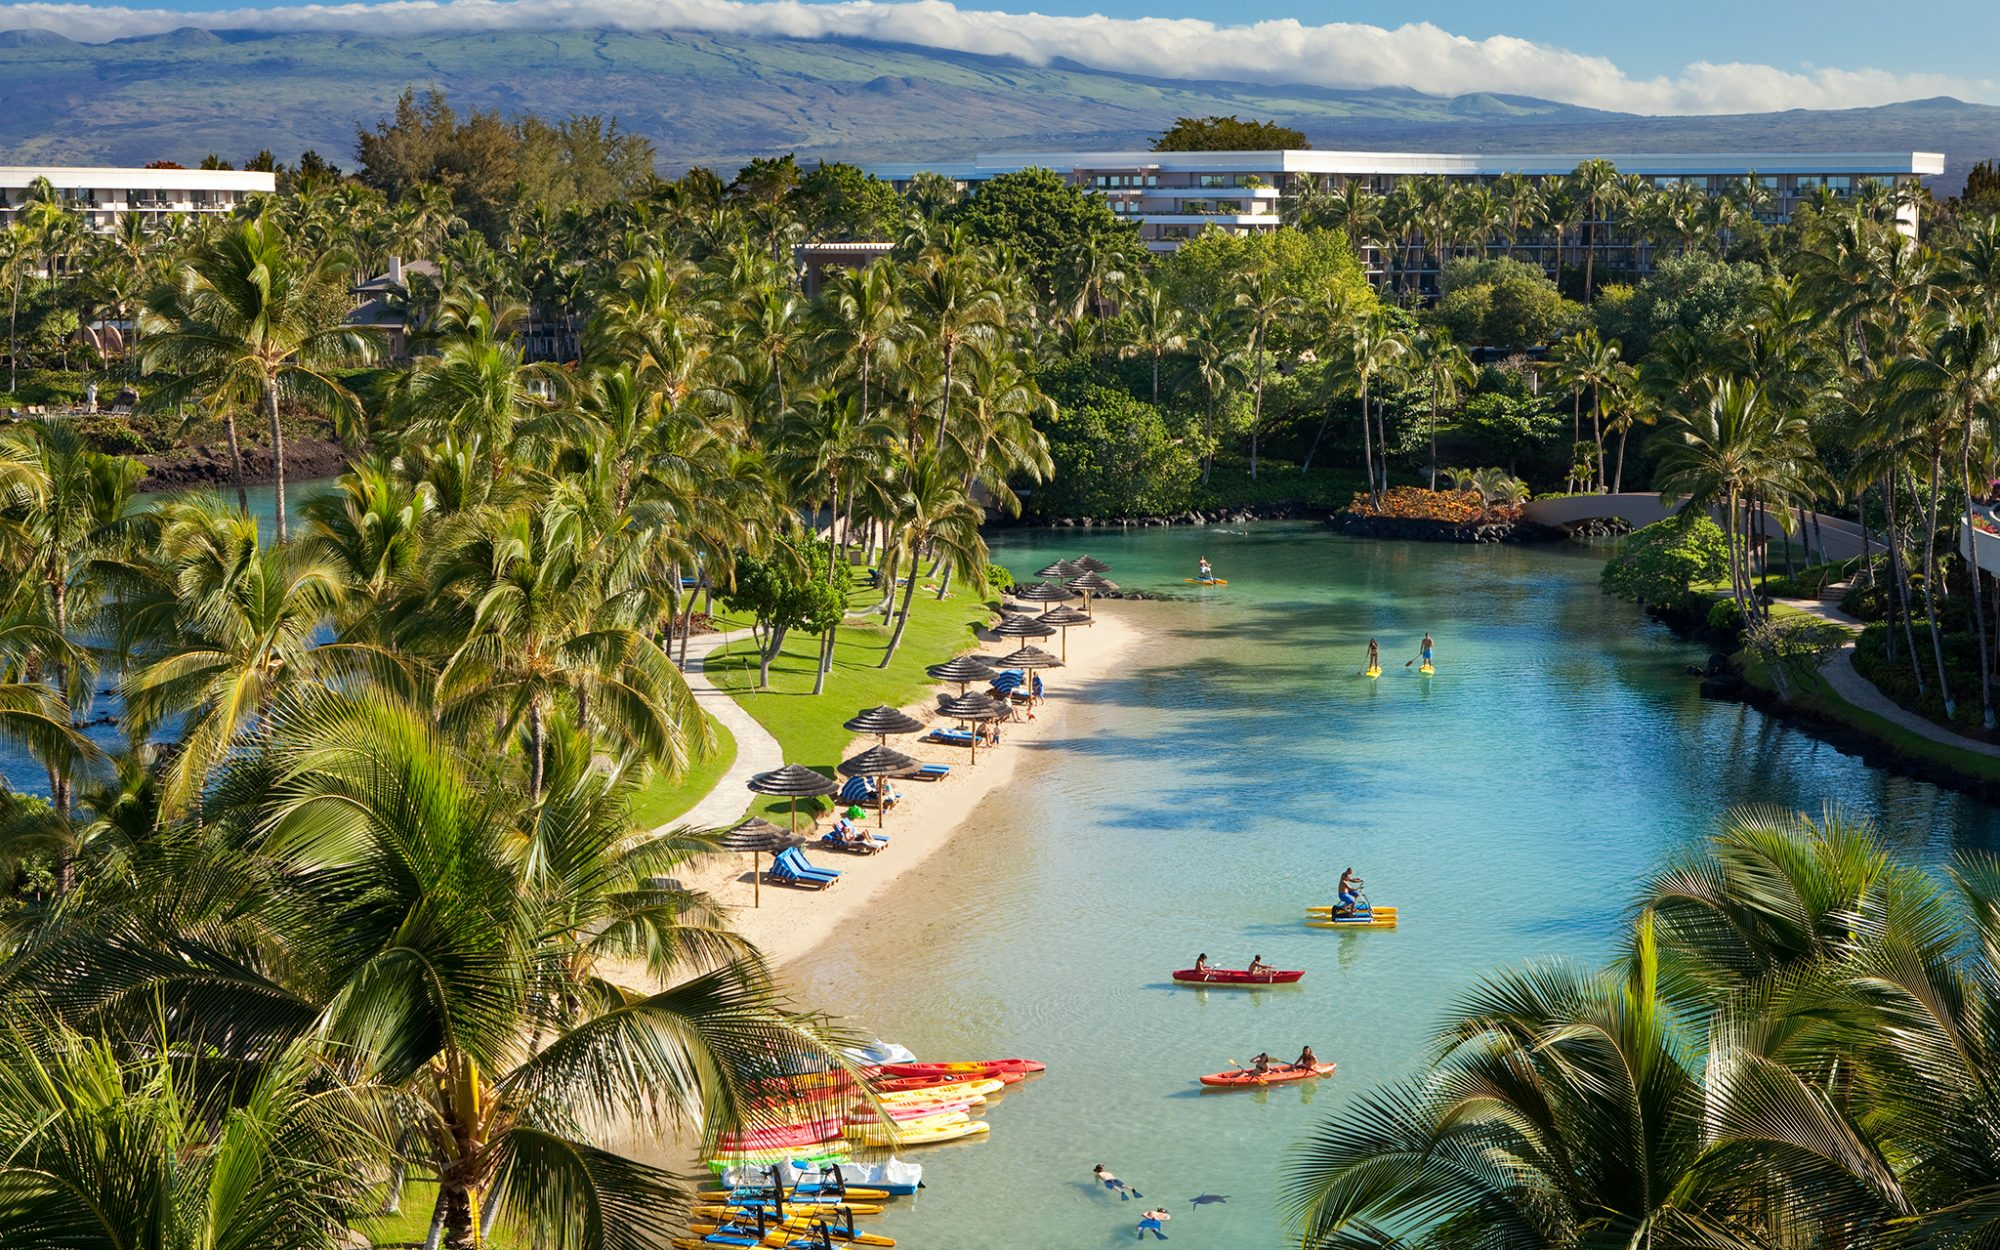 Best Family Beach Hotels: No. 19 Hilton Waikoloa Village, HI